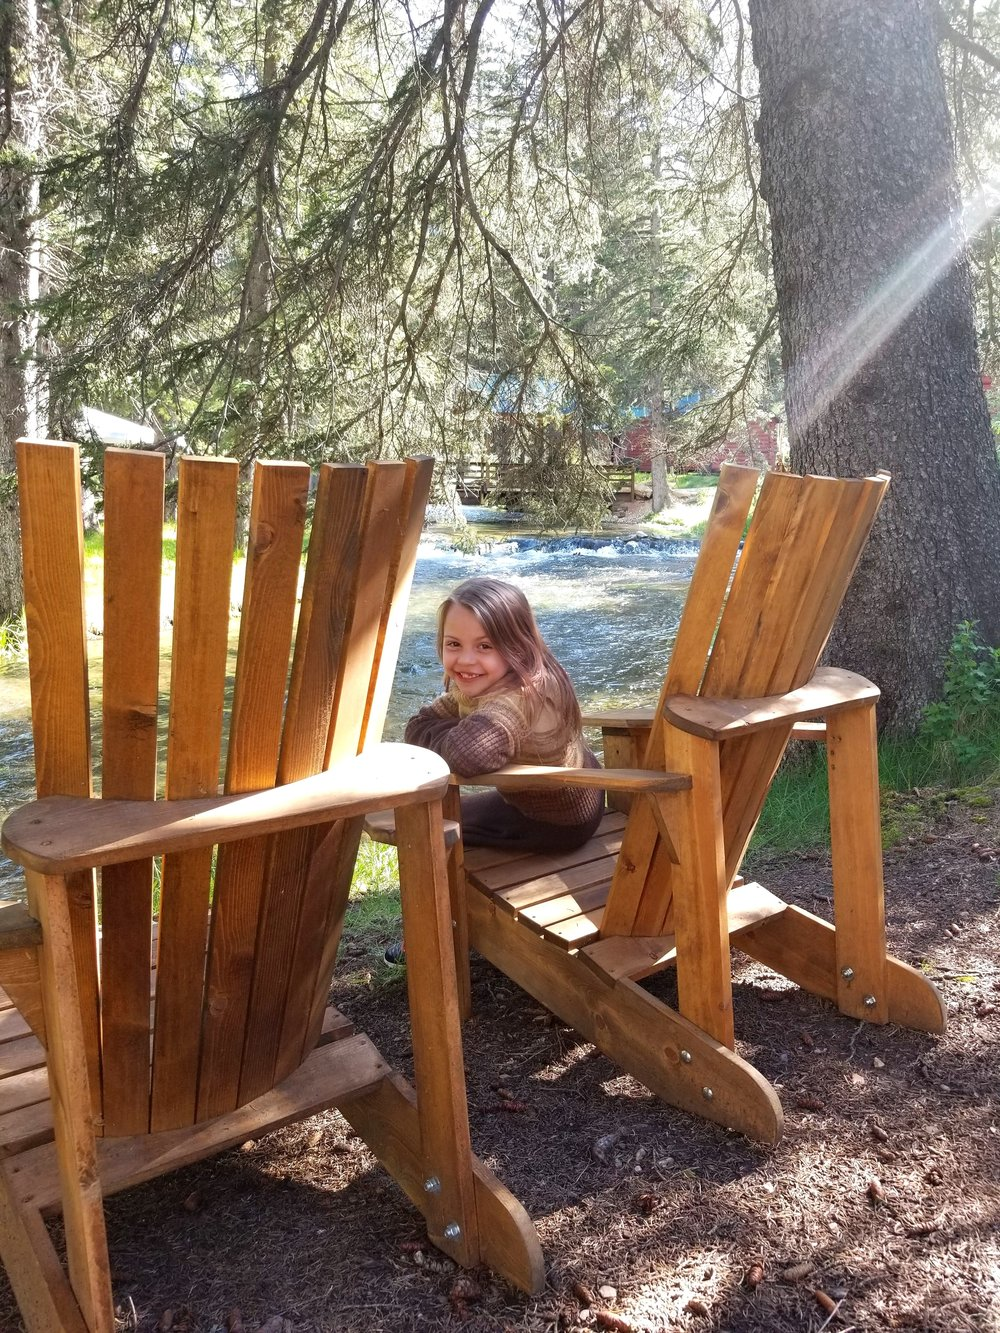 Enjoy creek side views in our Adirondack chairs.  These chairs are supplied at every cabin and made right here in South Dakota by a local friend and guest of Wickiup.  With wide arm rests, they are perfect for setting down a cool beverage and watching the fish go by.